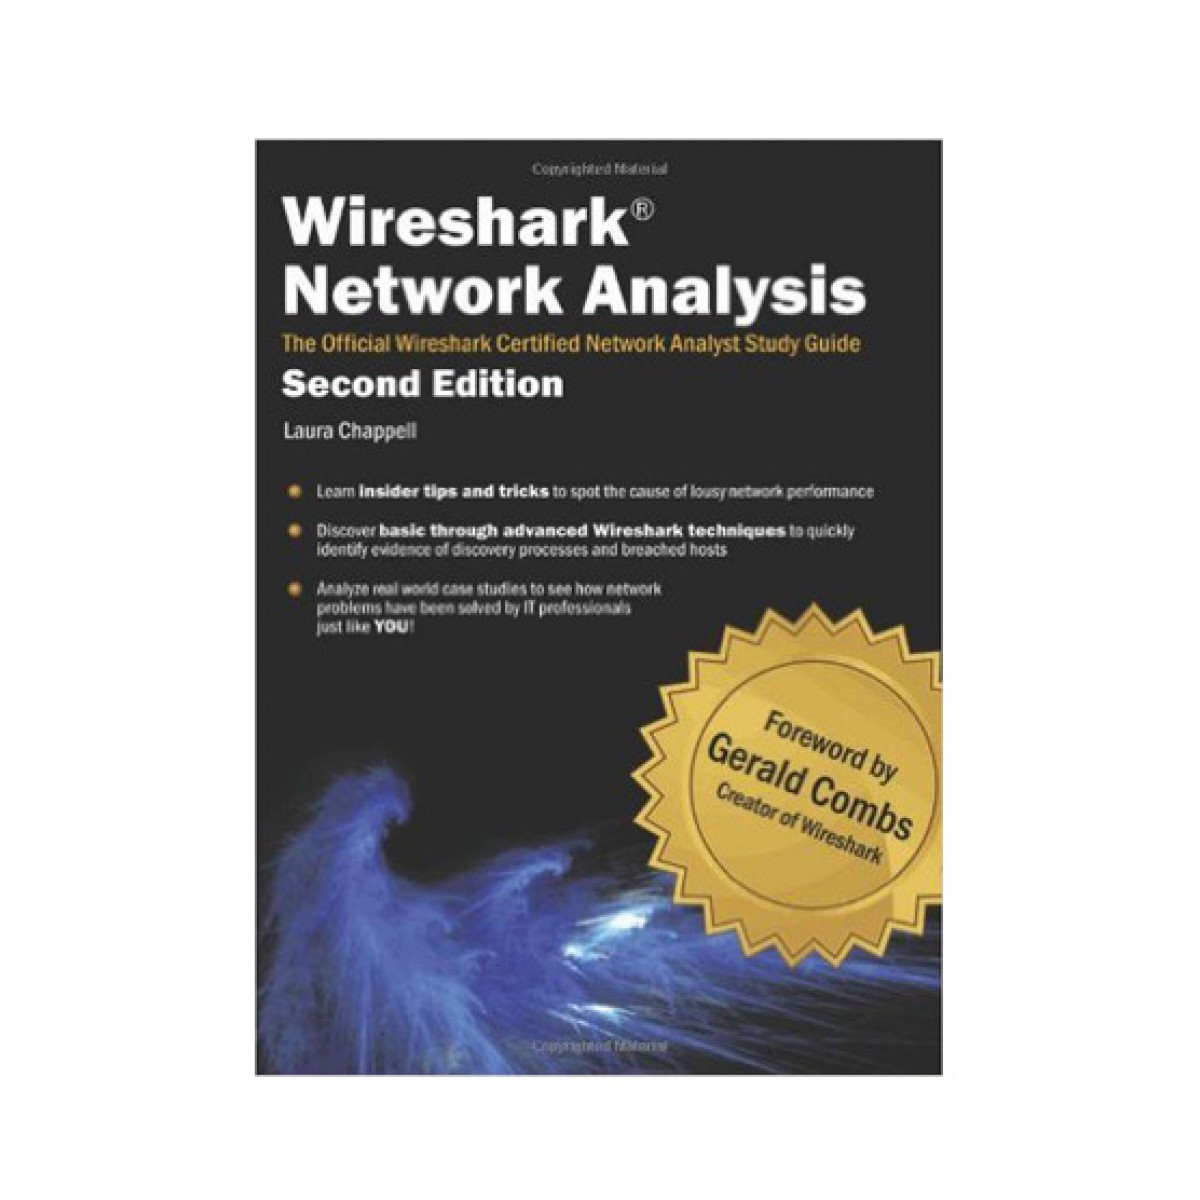 Wireshark Network Analysis Book 2nd Edition